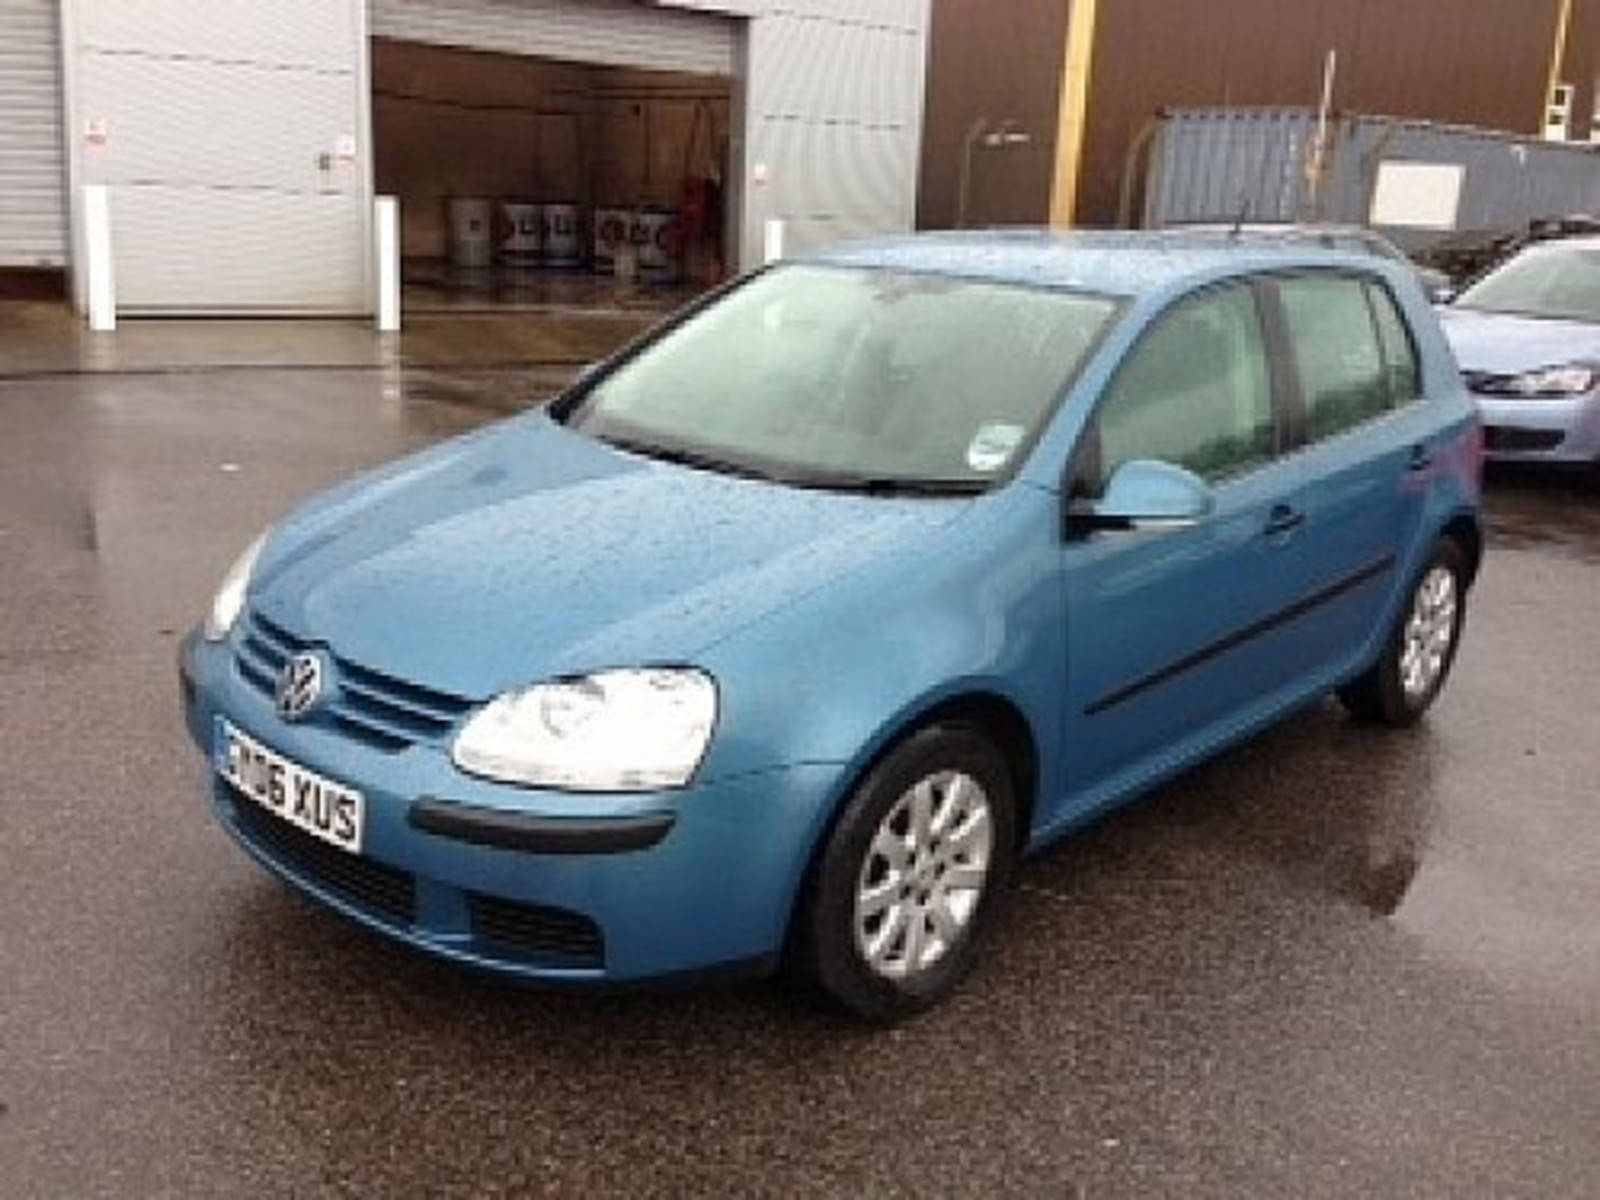 Volkswagen Golf 1.9 TDI SE Hatchback Diesel Blue at H & D Motors Watford